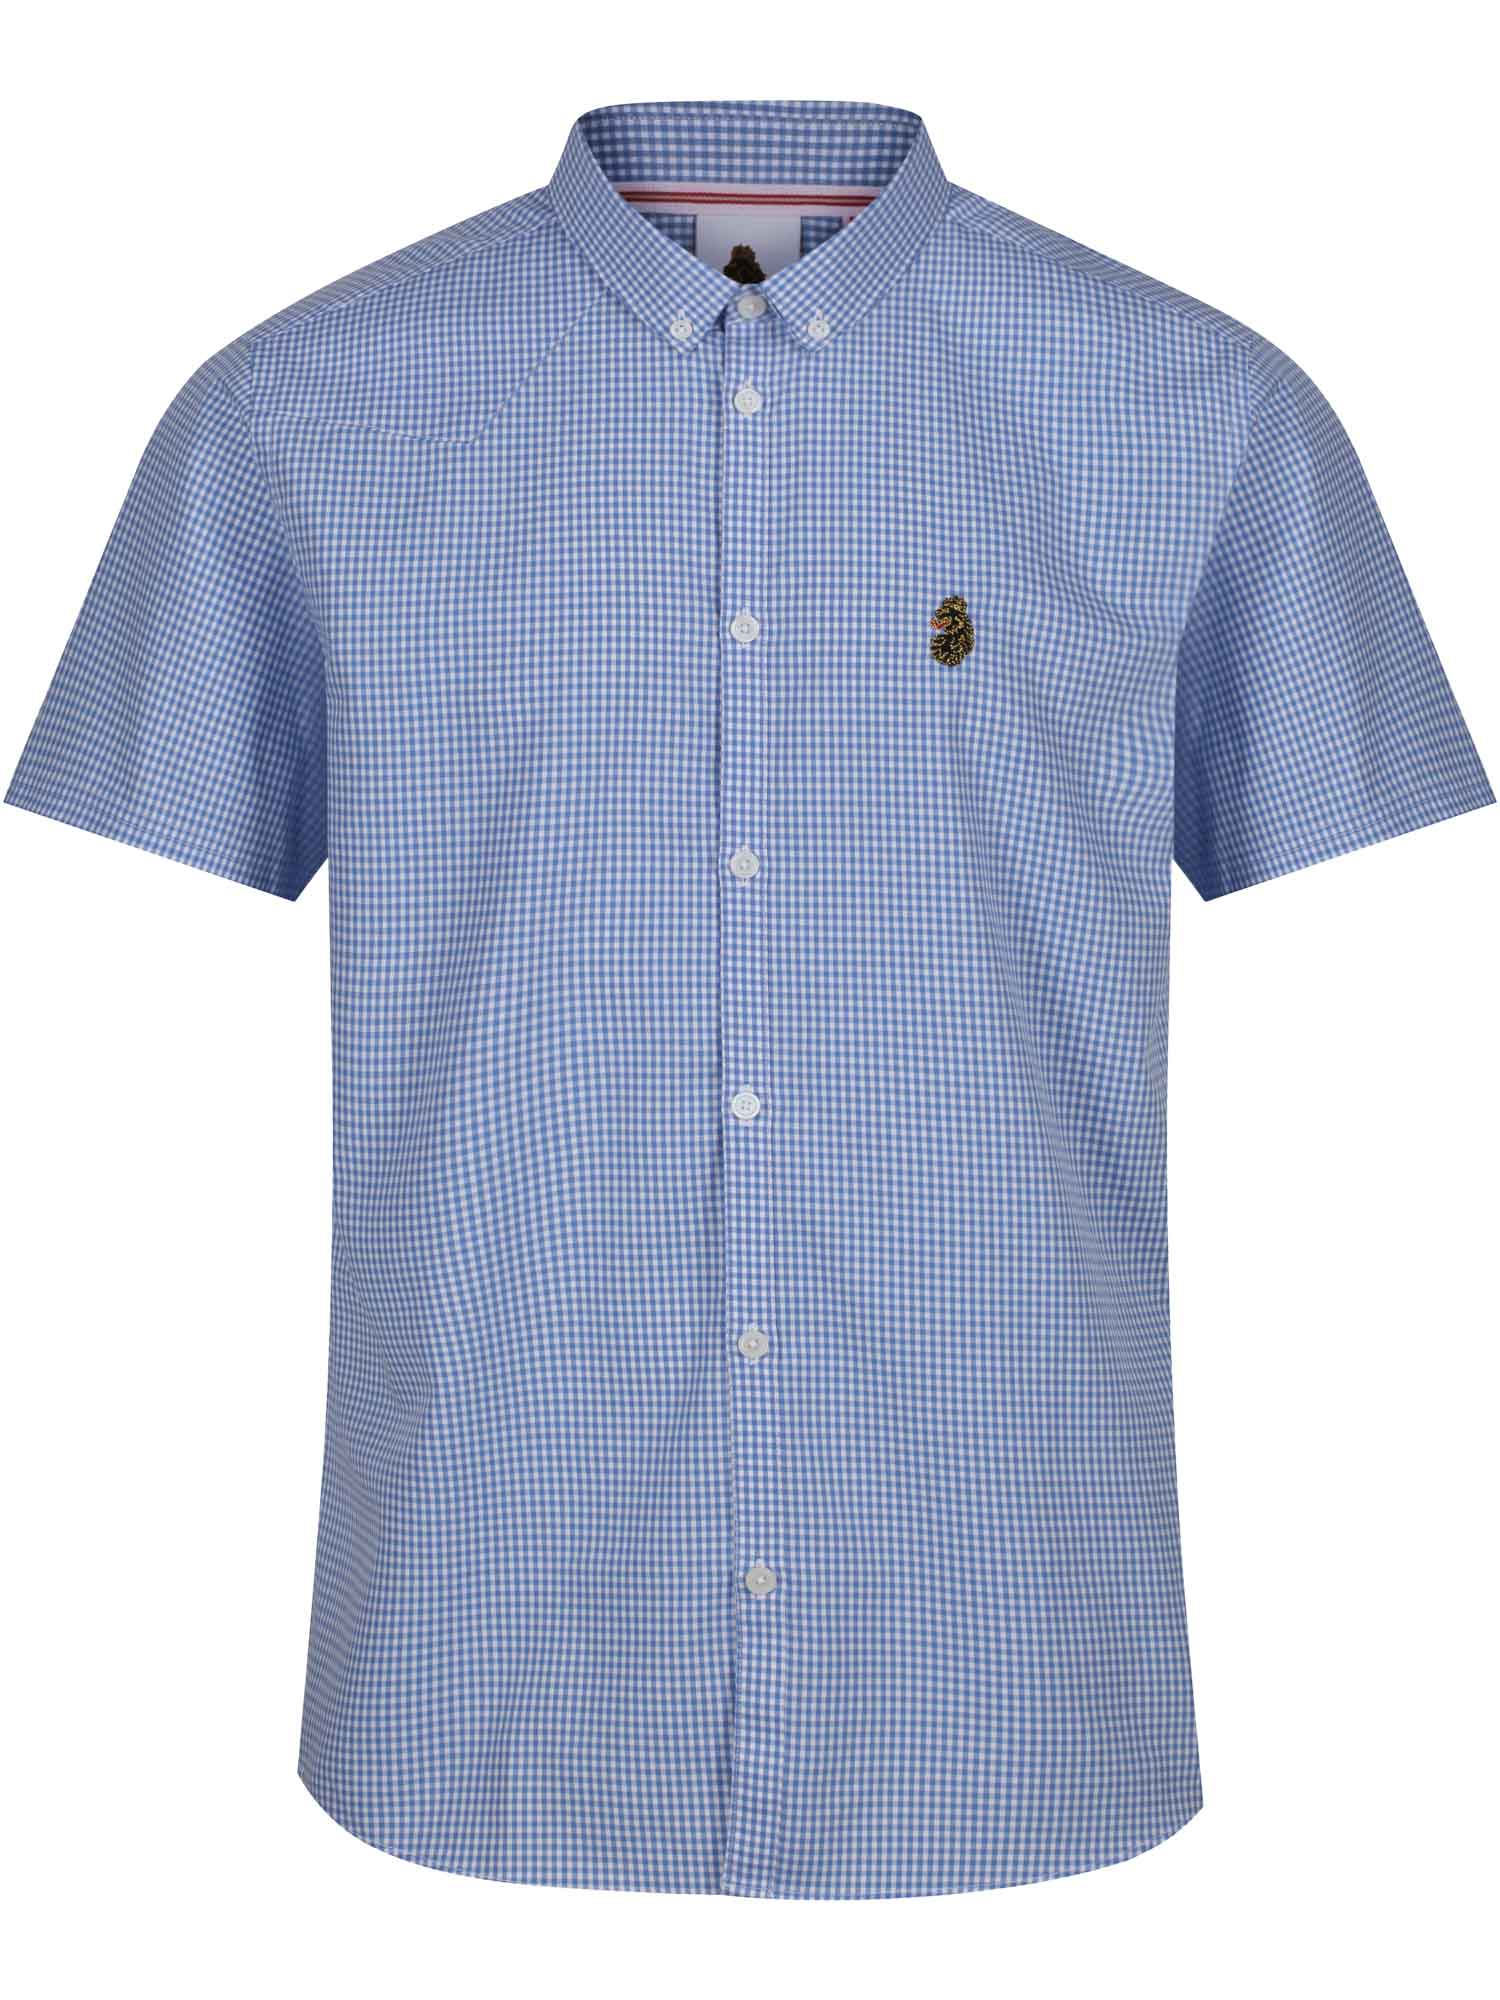 Men's Button-Downs. The perfect addition to top off any outfit, men's button-down shirts from Kohl's are ideal for every makeshop-mdrcky9h.ga offer many styles, designs and fits, meaning your options for men's button-downs from Kohl's are almost endless.